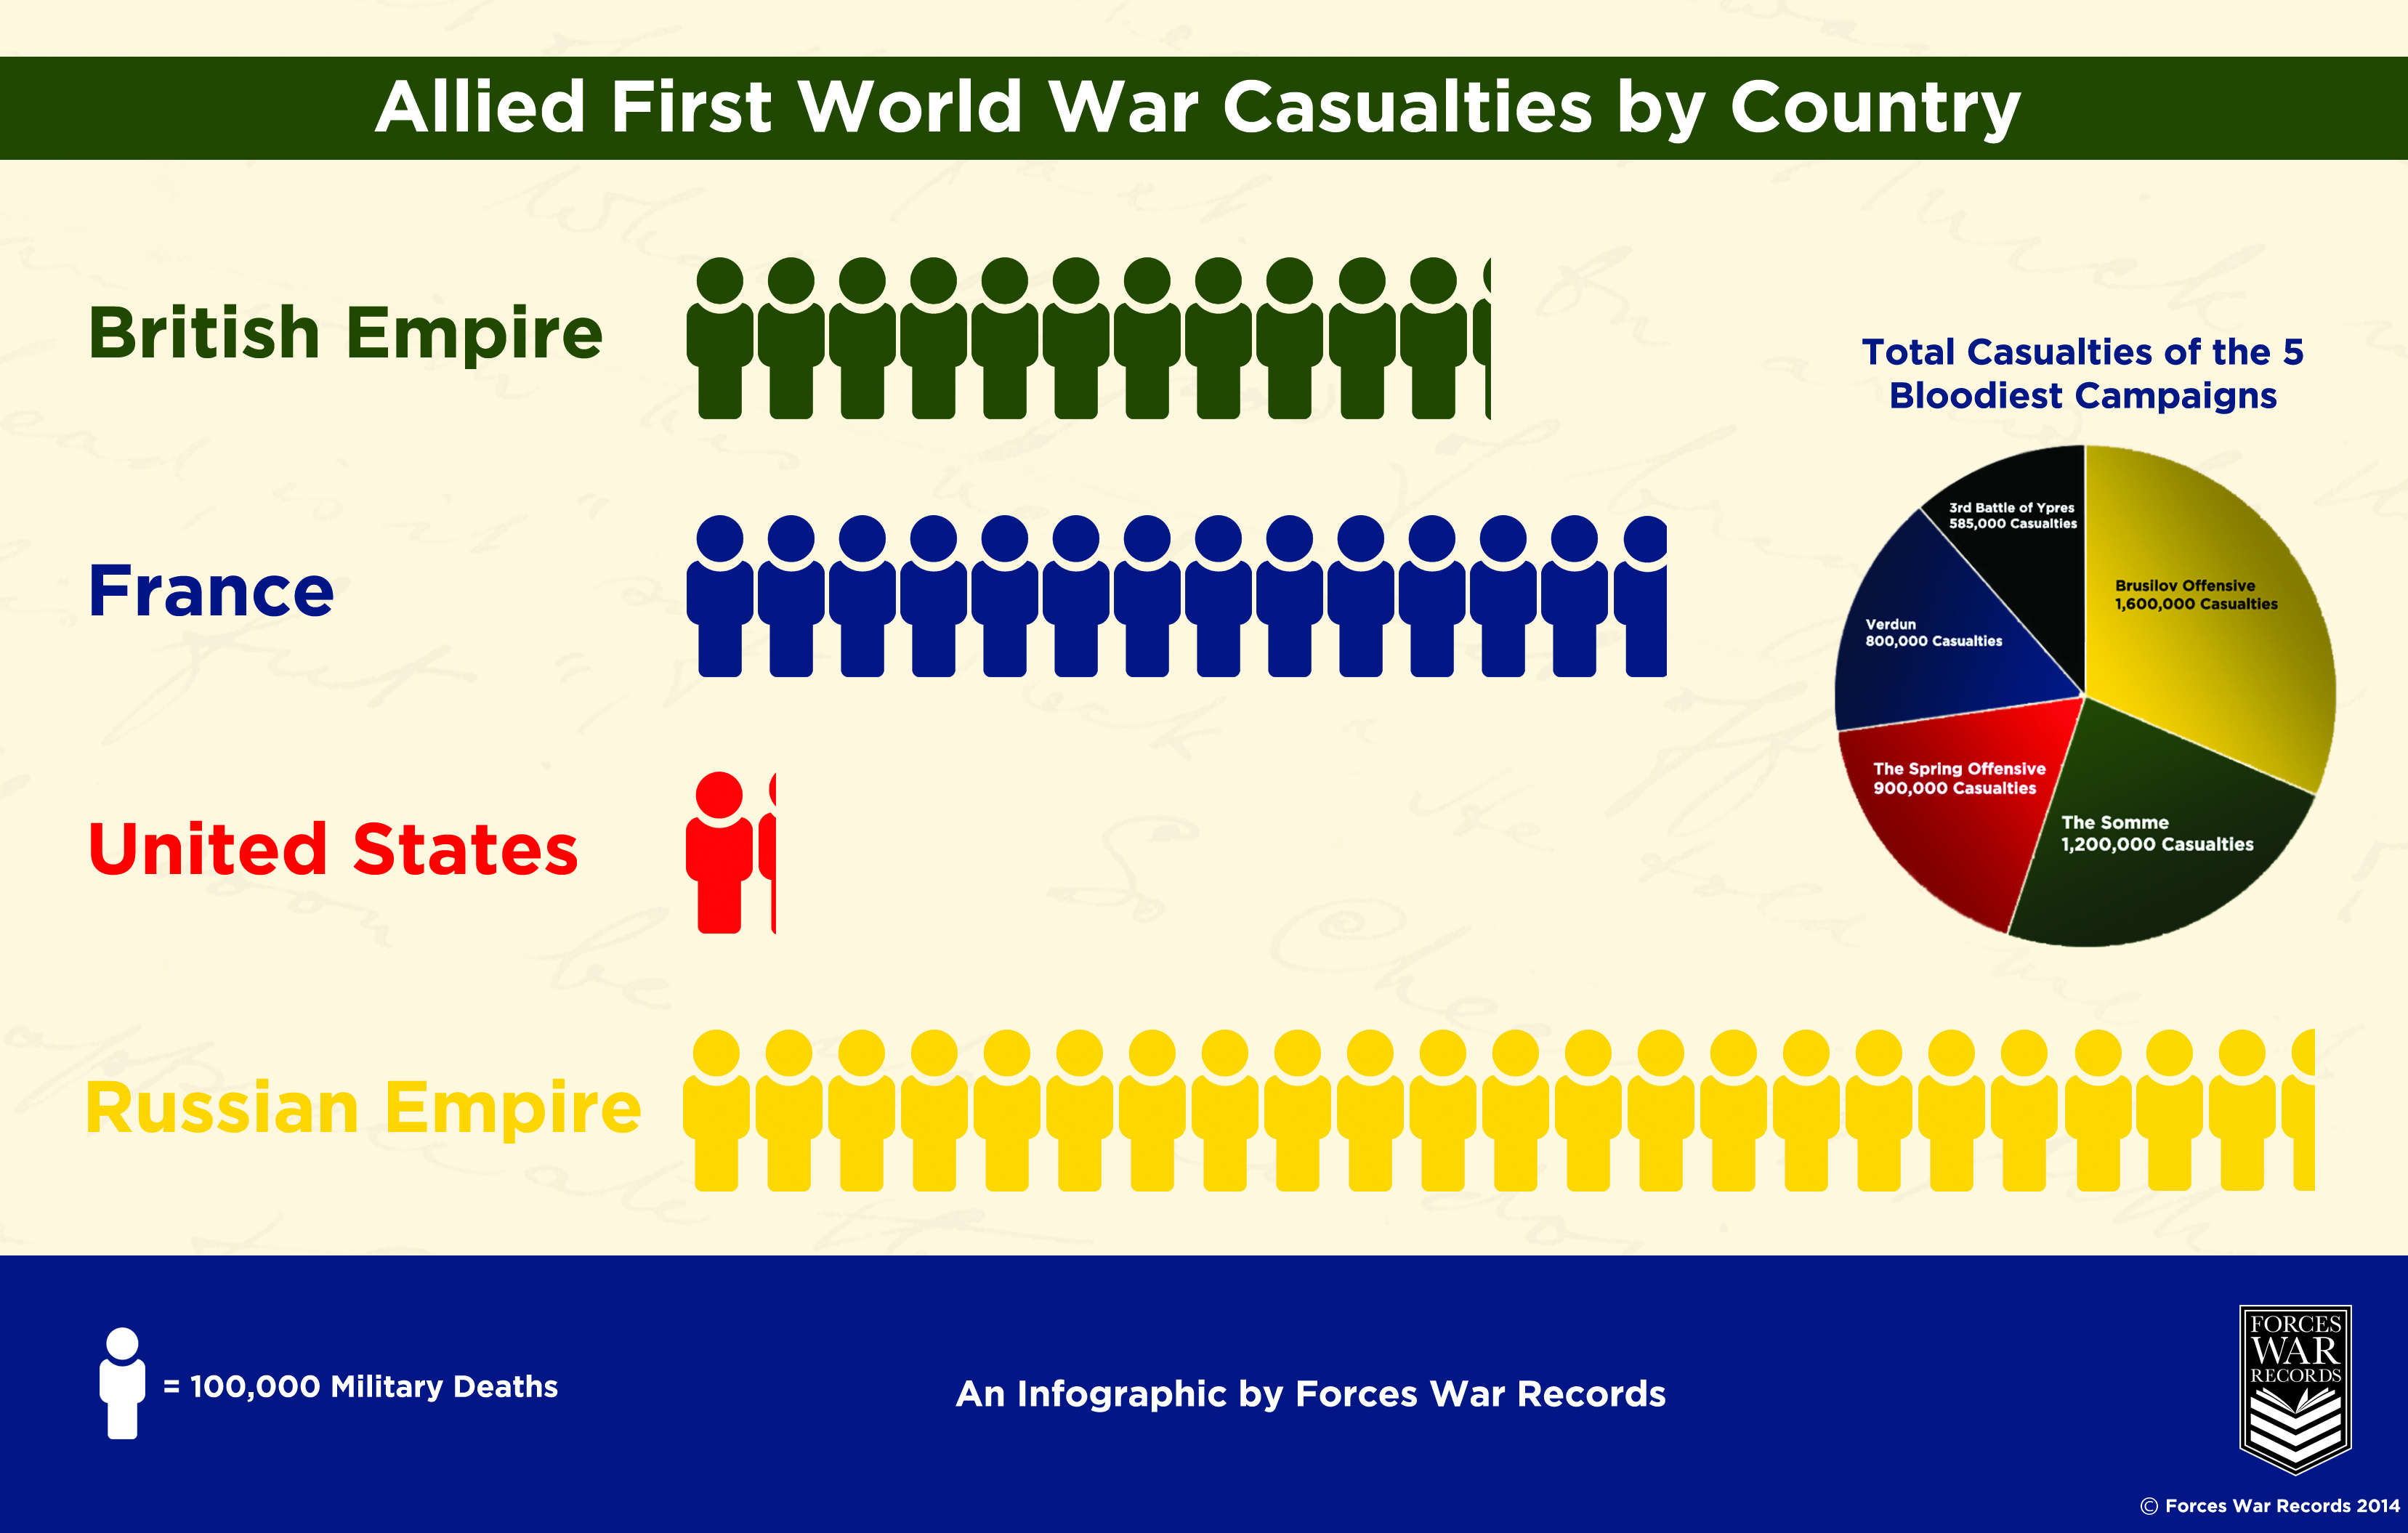 Allied WW1 Casualties - WWI Brusilov Offensive Casualties